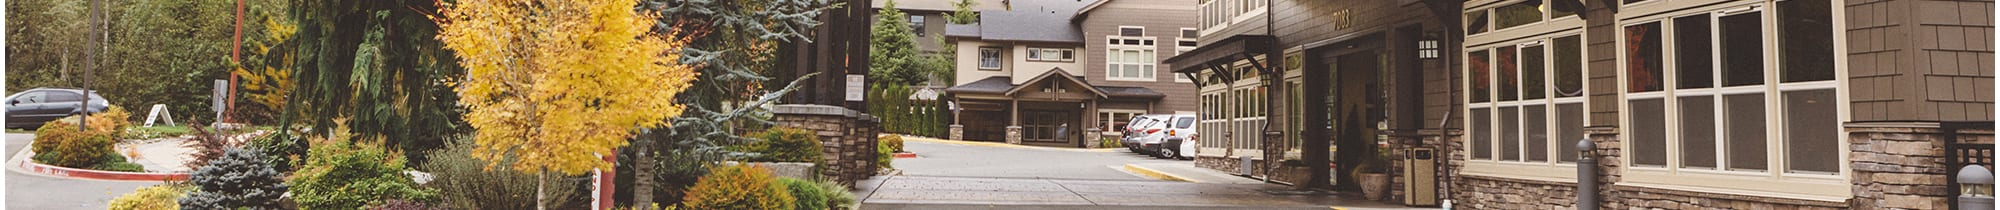 Learn more about The Lodge at Mallard's Landing in Gig Harbor, WA